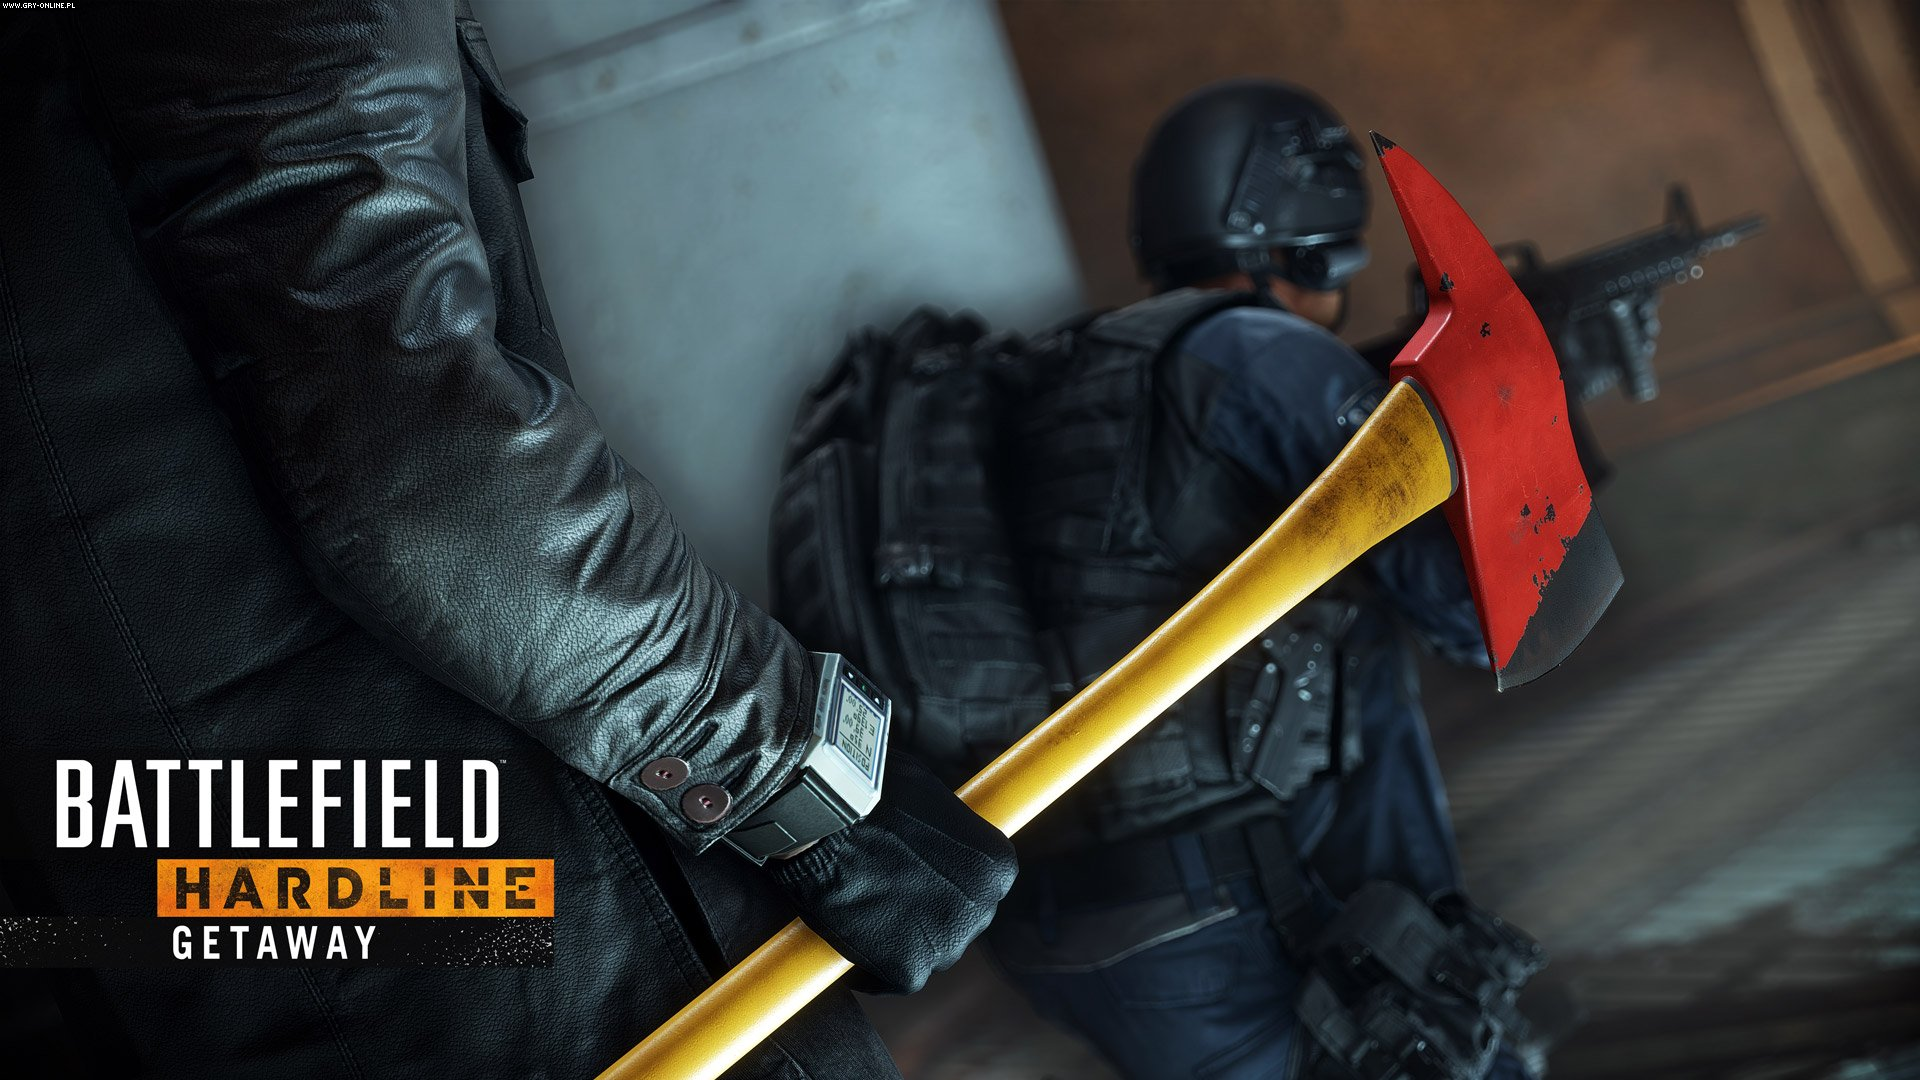 Battlefield Hardline: Getaway PC, X360, XONE, PS3, PS4 Games Image 3/3, Electronic Arts Inc.